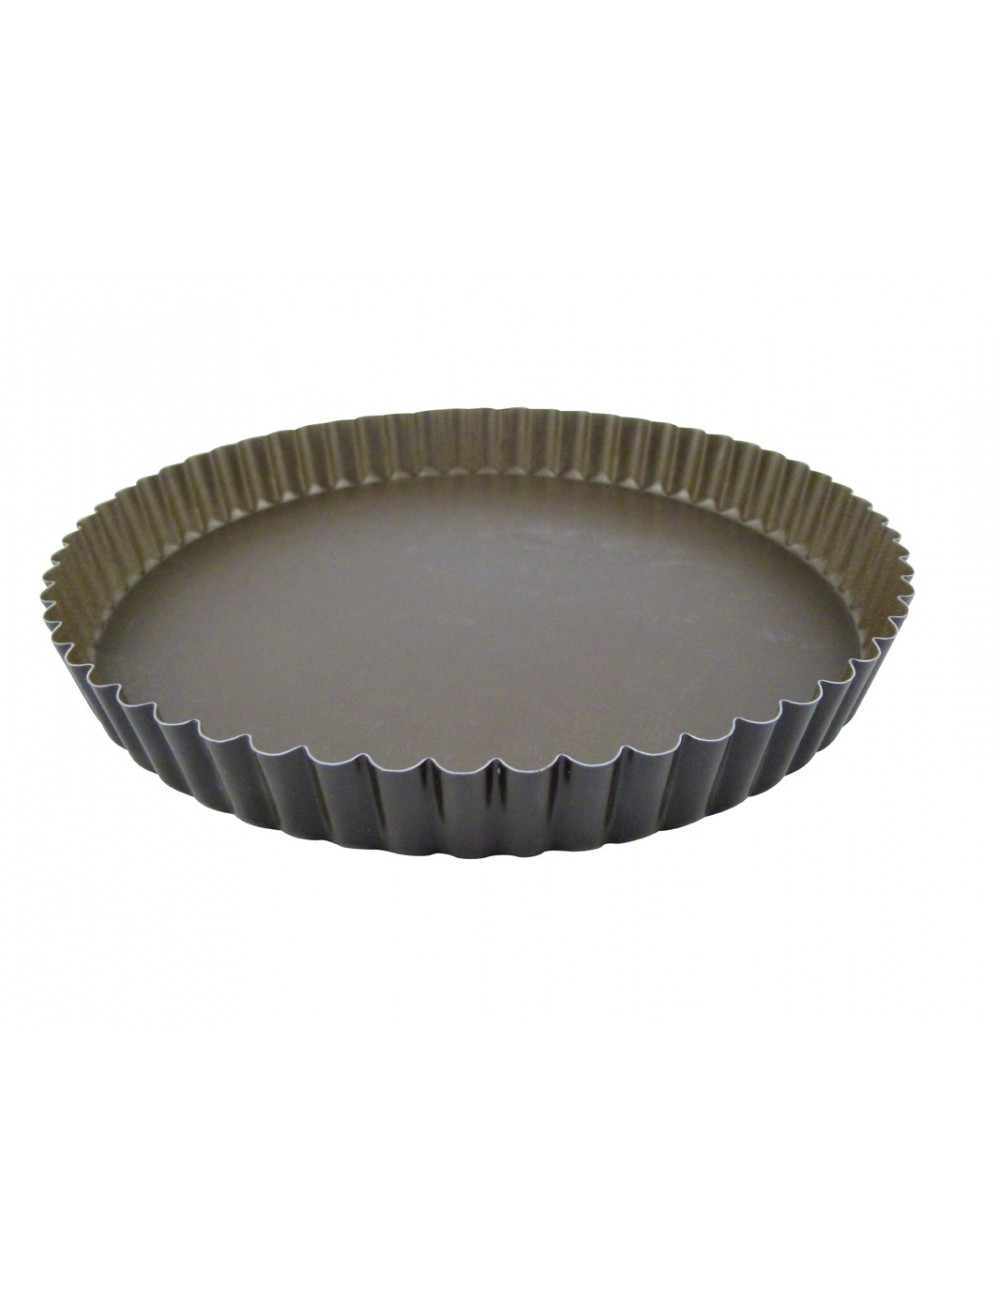 TOURTIERE RONDE CANNELEE - FOND MOBILE - ANTI-ADHERENT